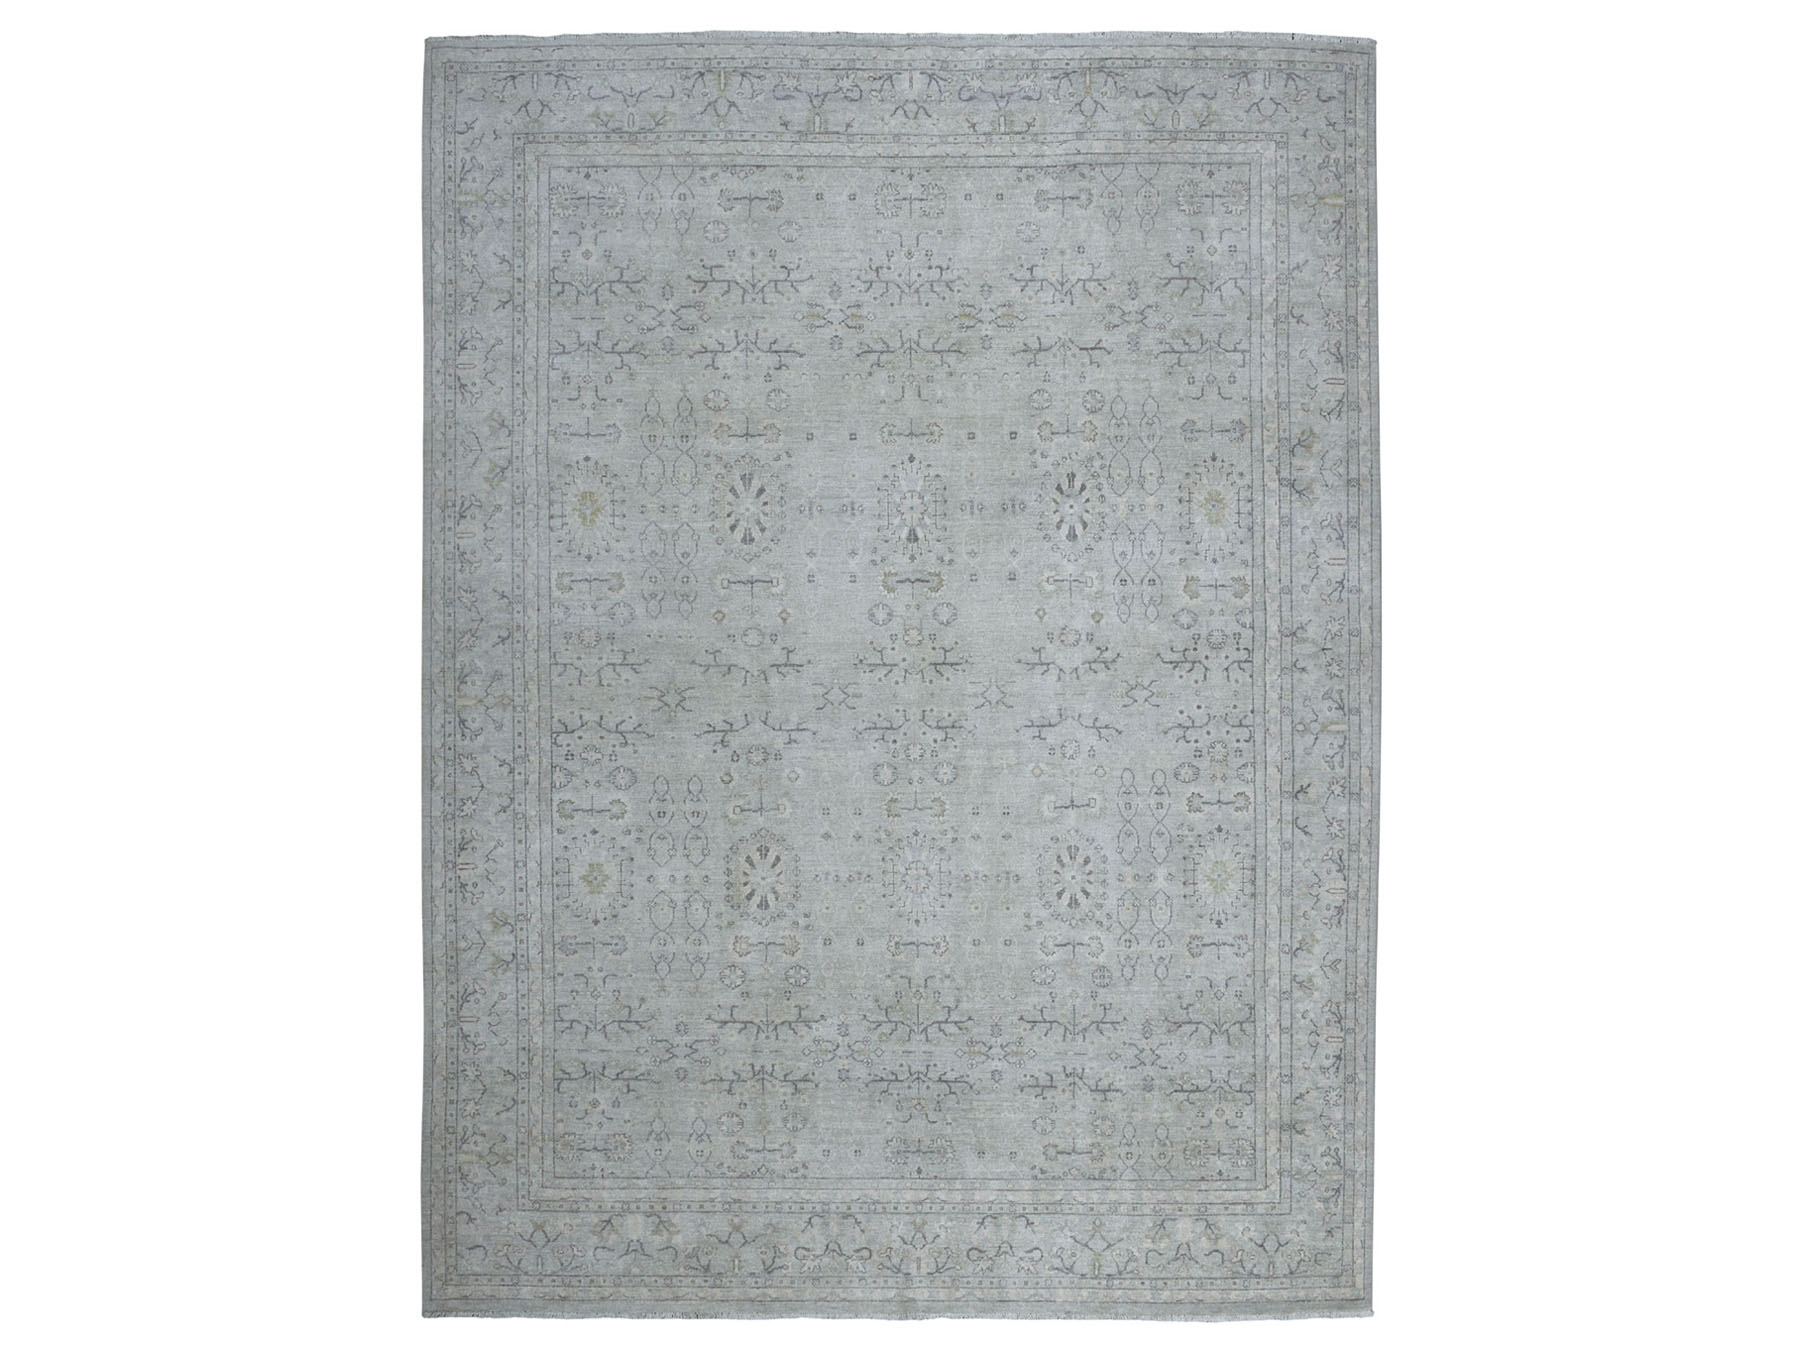 Transitional Wool Hand-Knotted Area Rug 8'9